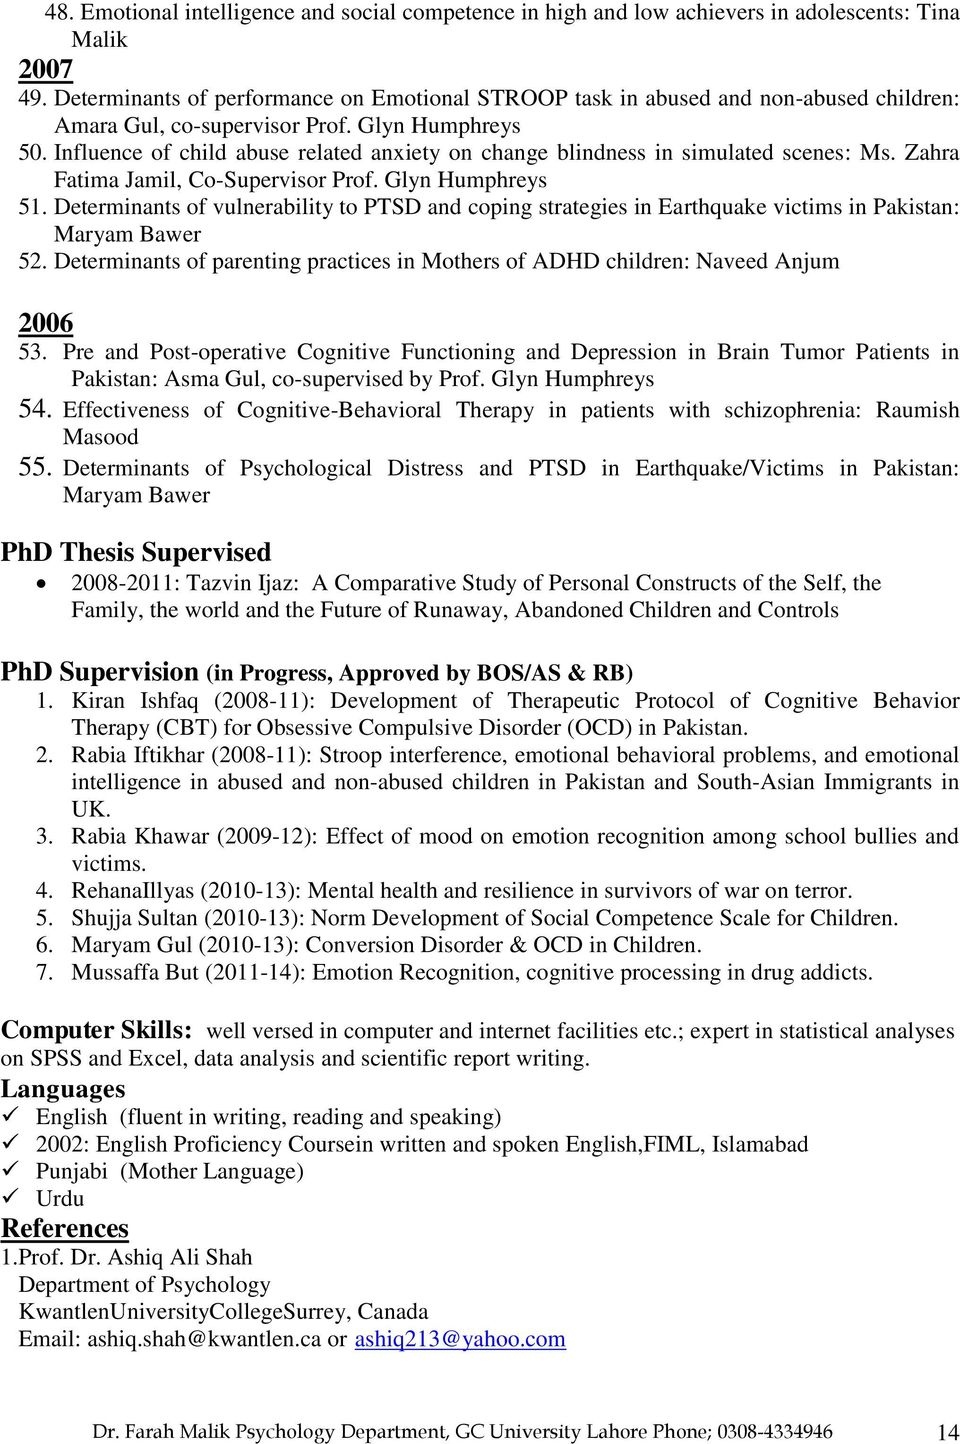 Rationale of research proposal mixed methods